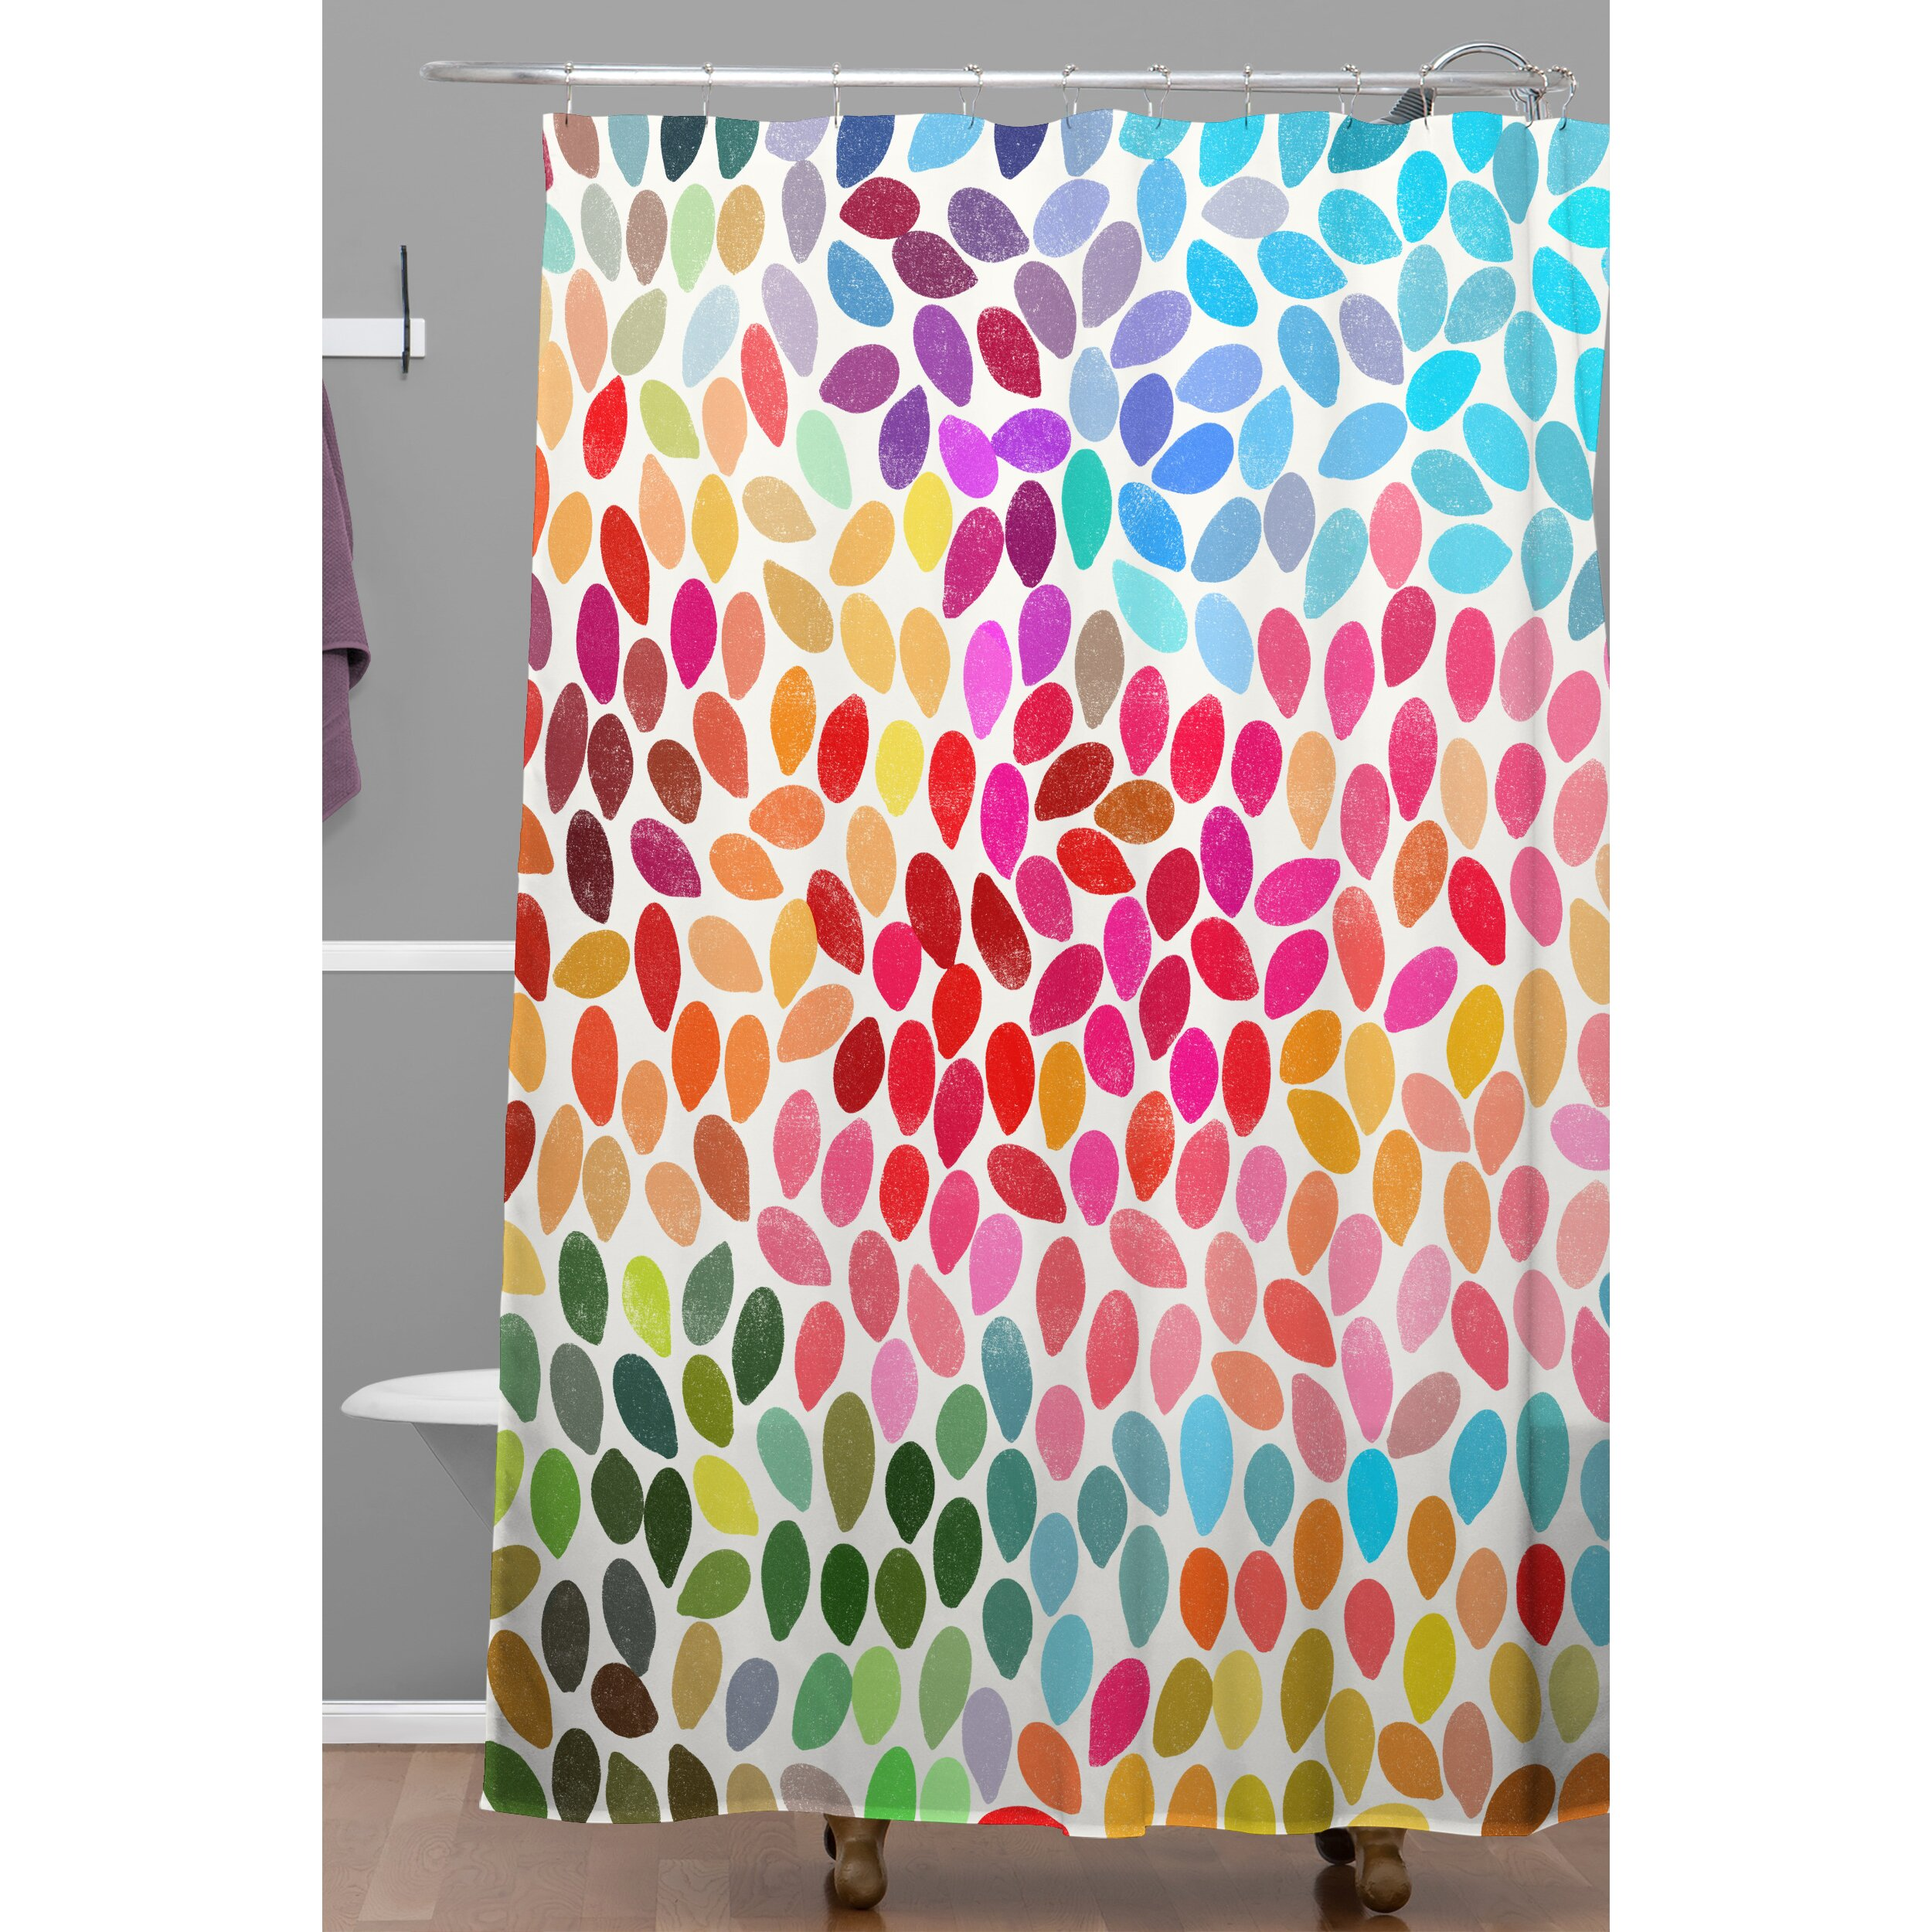 Peacock shower curtain urban outfitters - Octopus Shower Curtain Cafe Press Teal And Orange Shower Curtain Deny Designs Garima Dhawan Dots